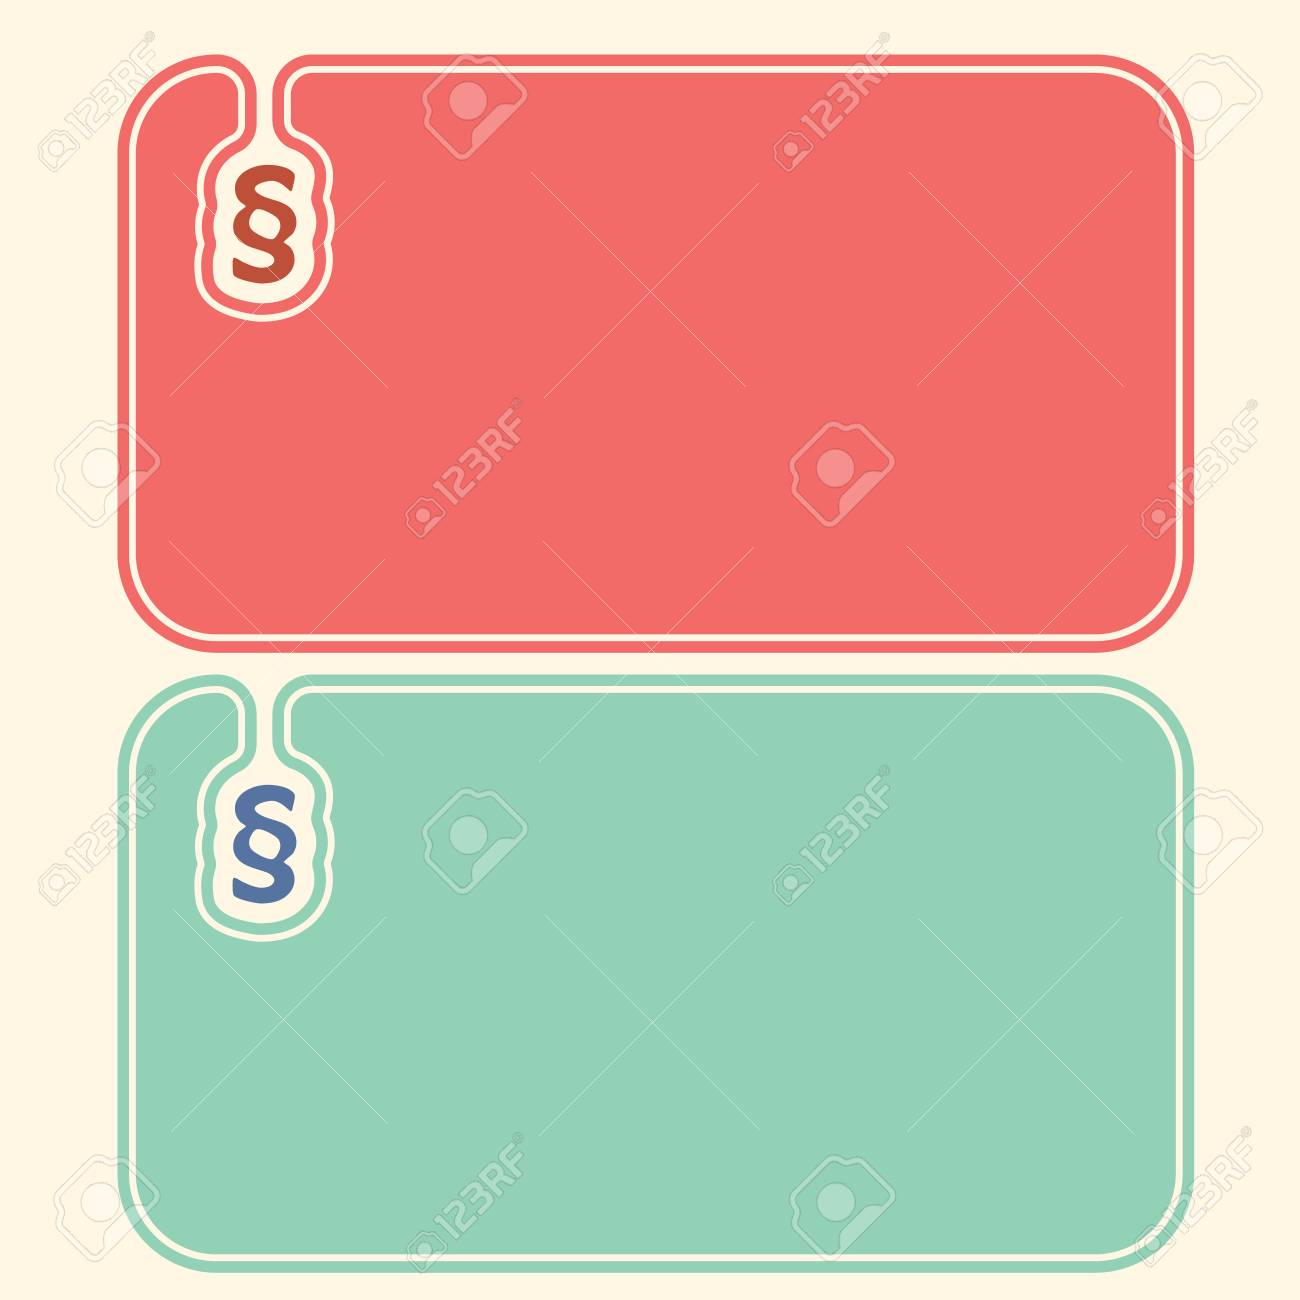 Colored Business Cards With Paragraph Royalty Free Cliparts, Vectors ...